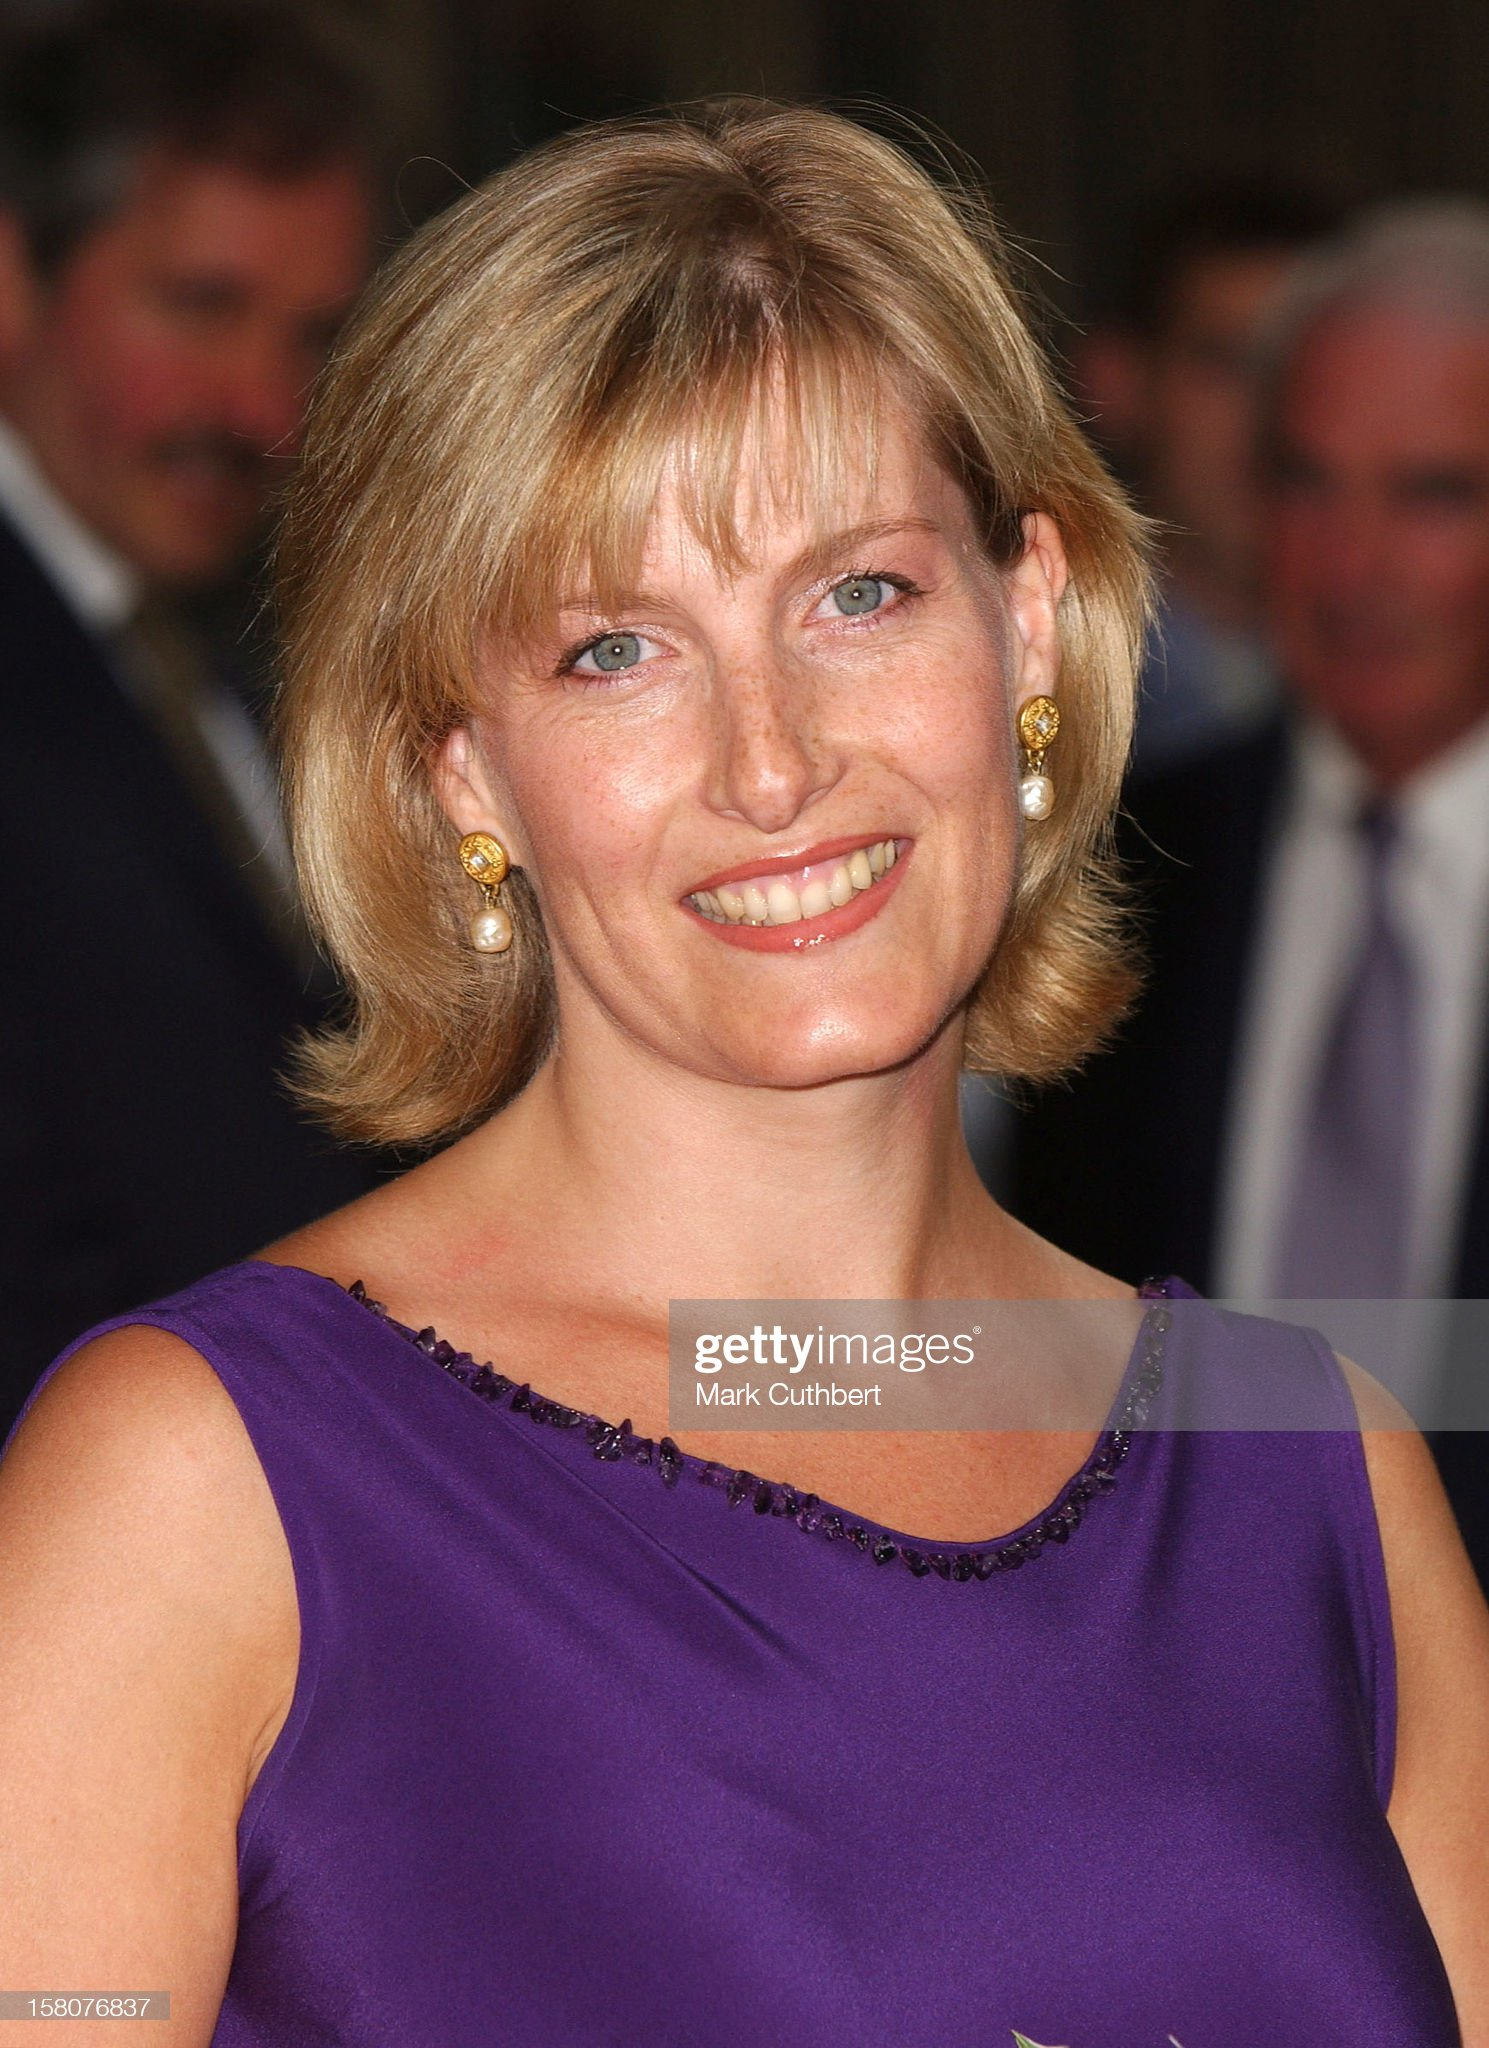 The Earl & Countess Of Wessex Attend A Gala Evening Of Dance : News Photo